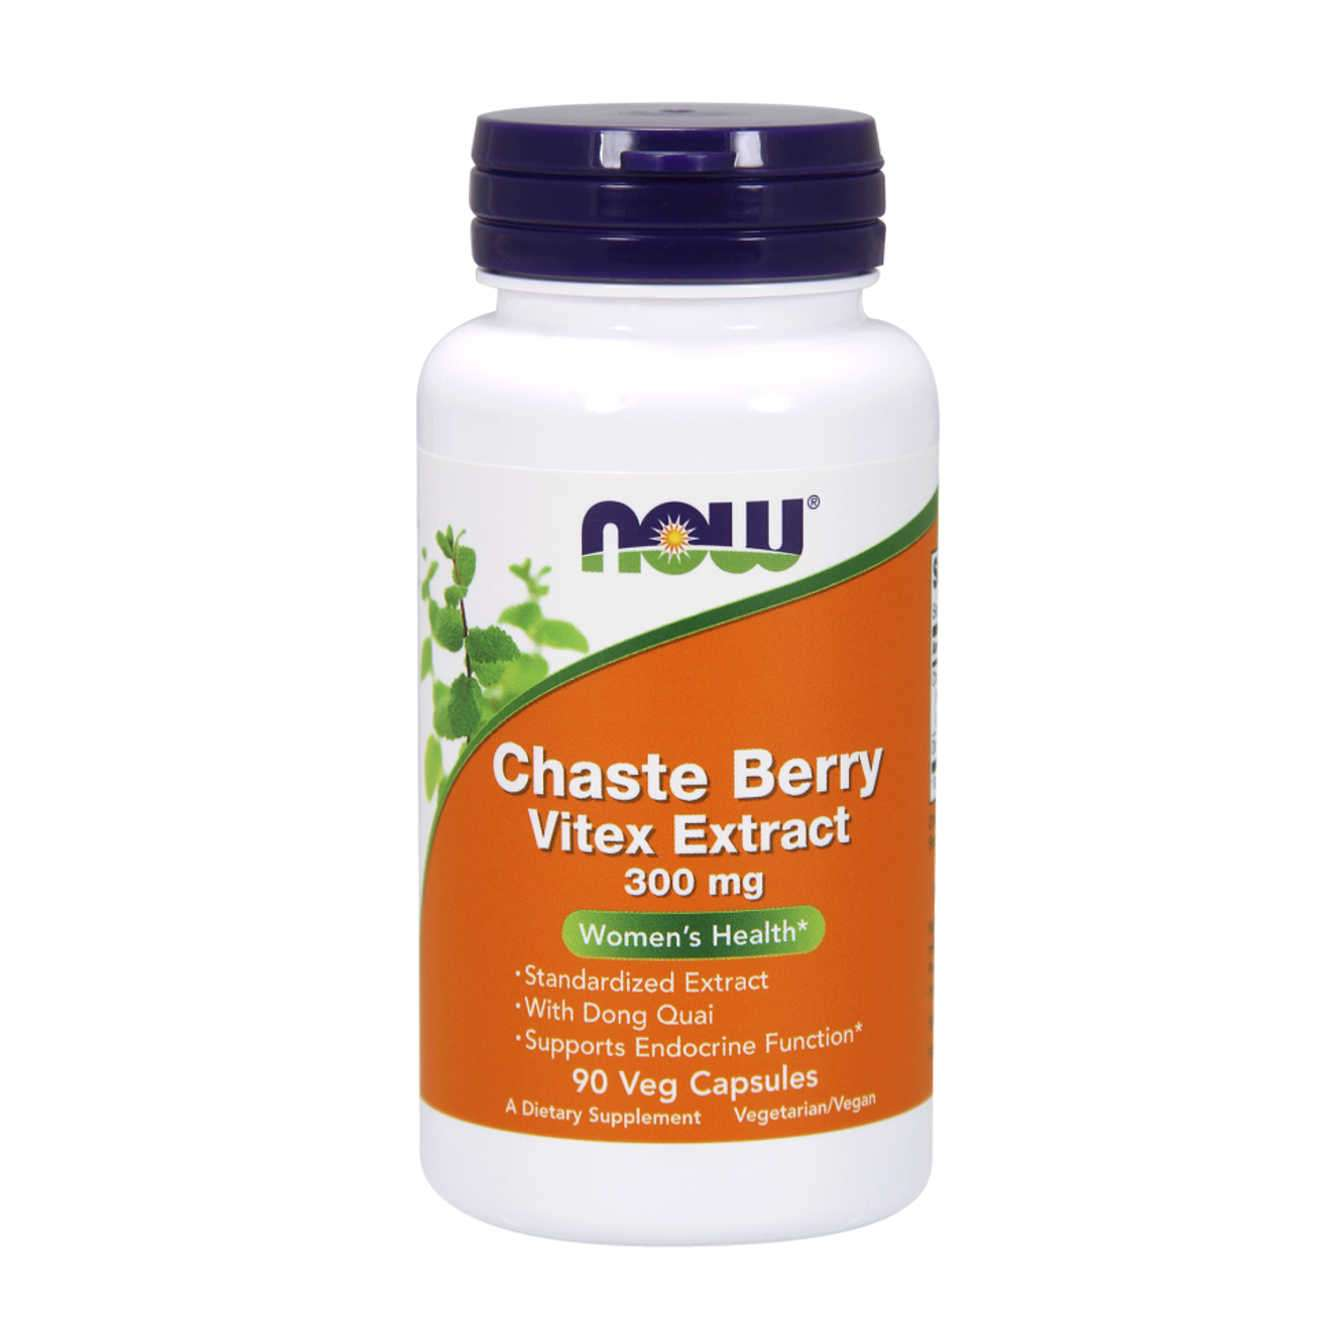 CHASTE BERRY VITEX EXTRACT 300mg - 90 caps